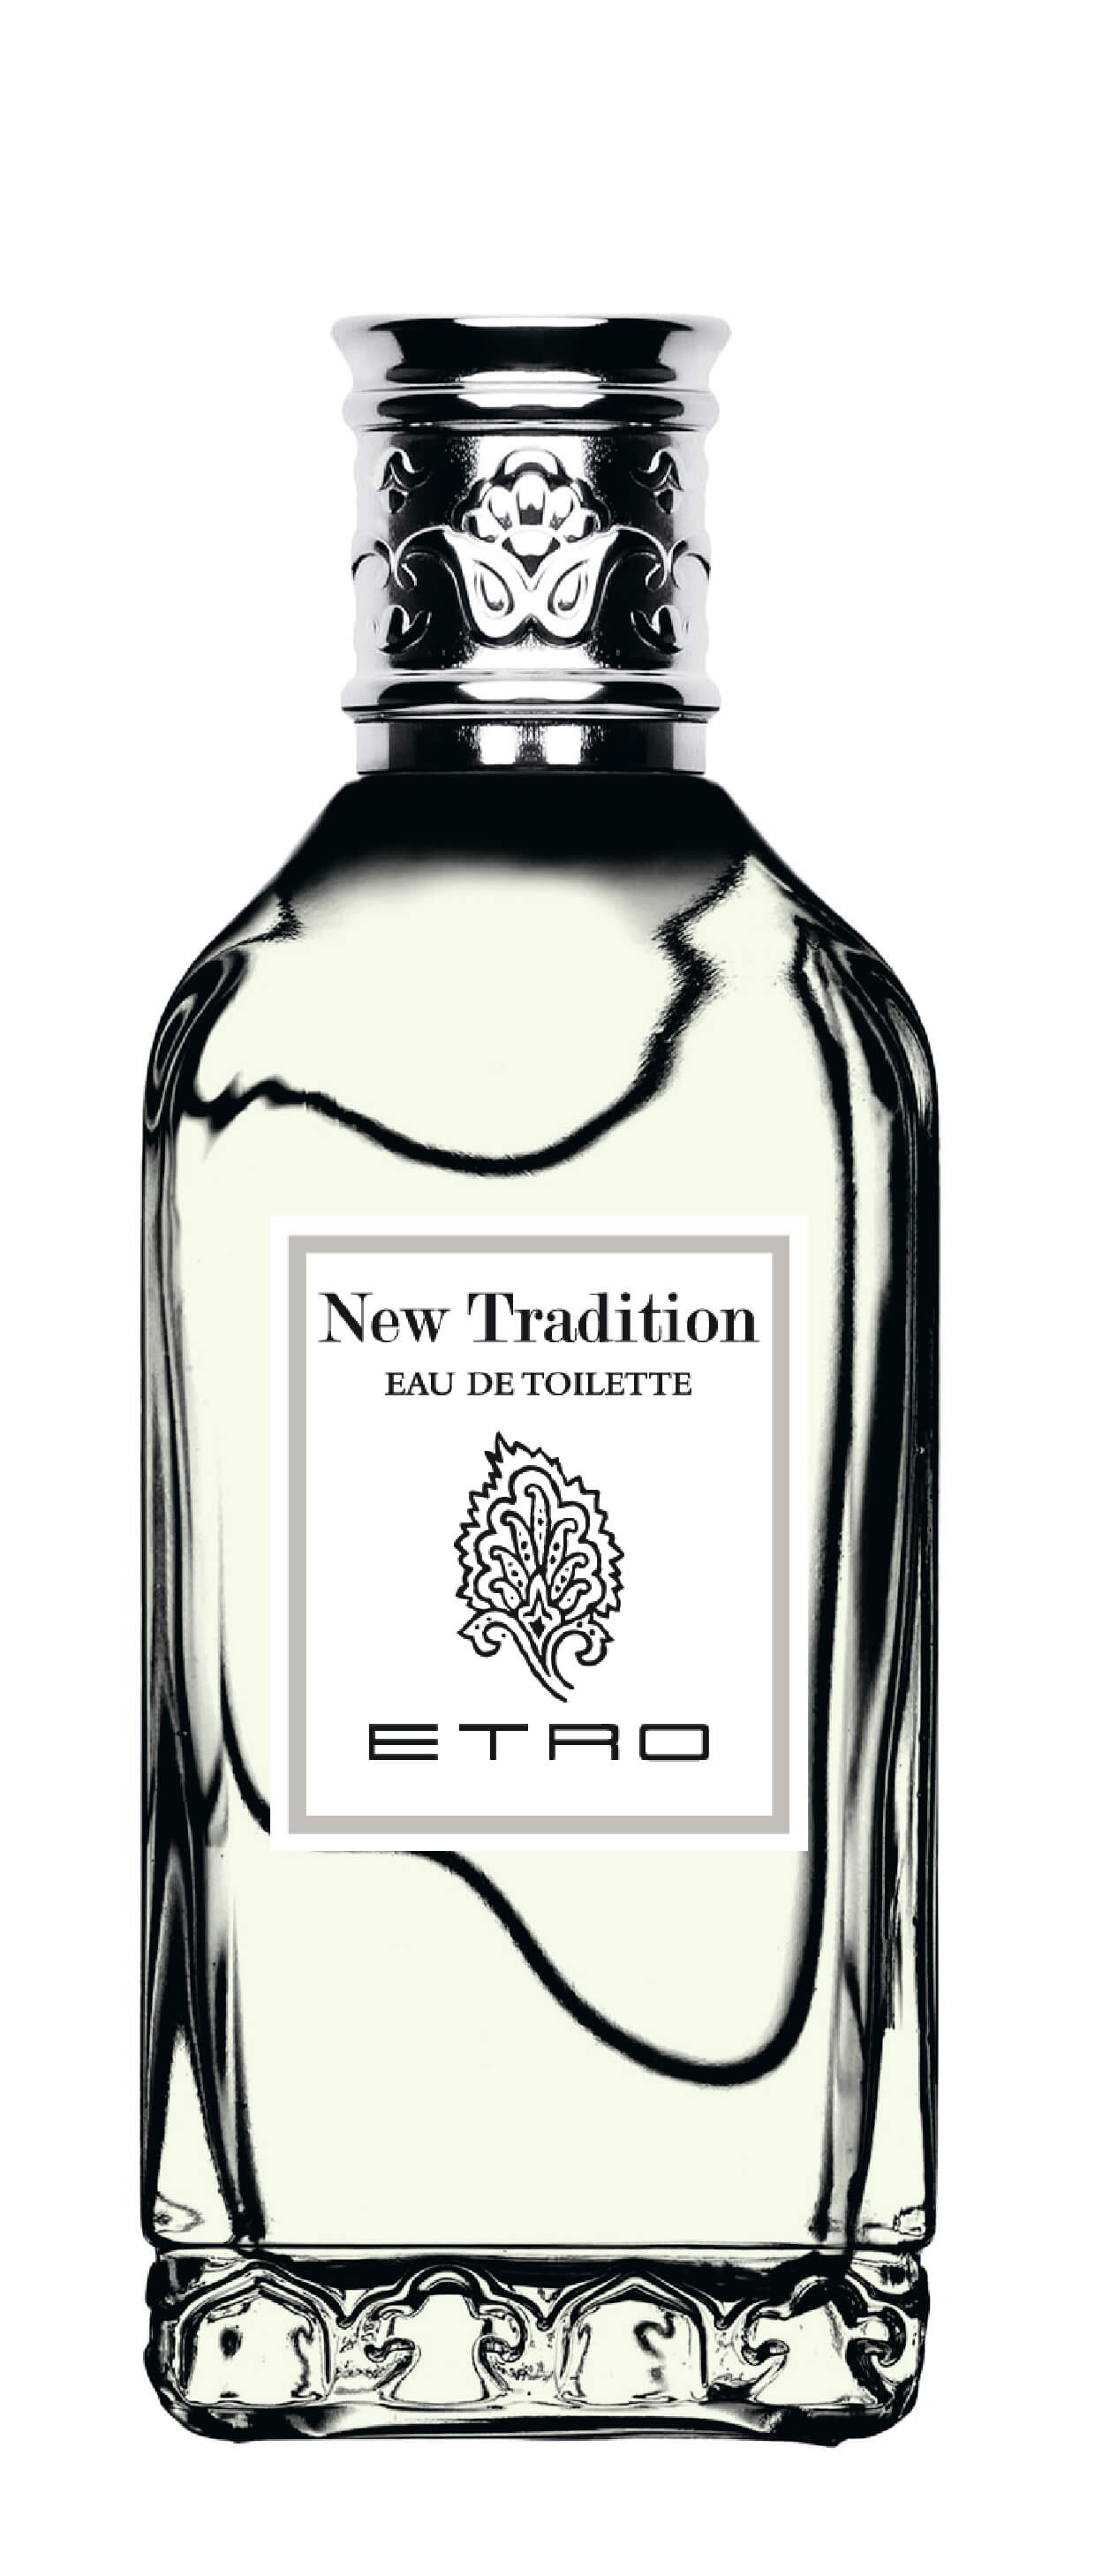 New Tradition - Eau de Toilette